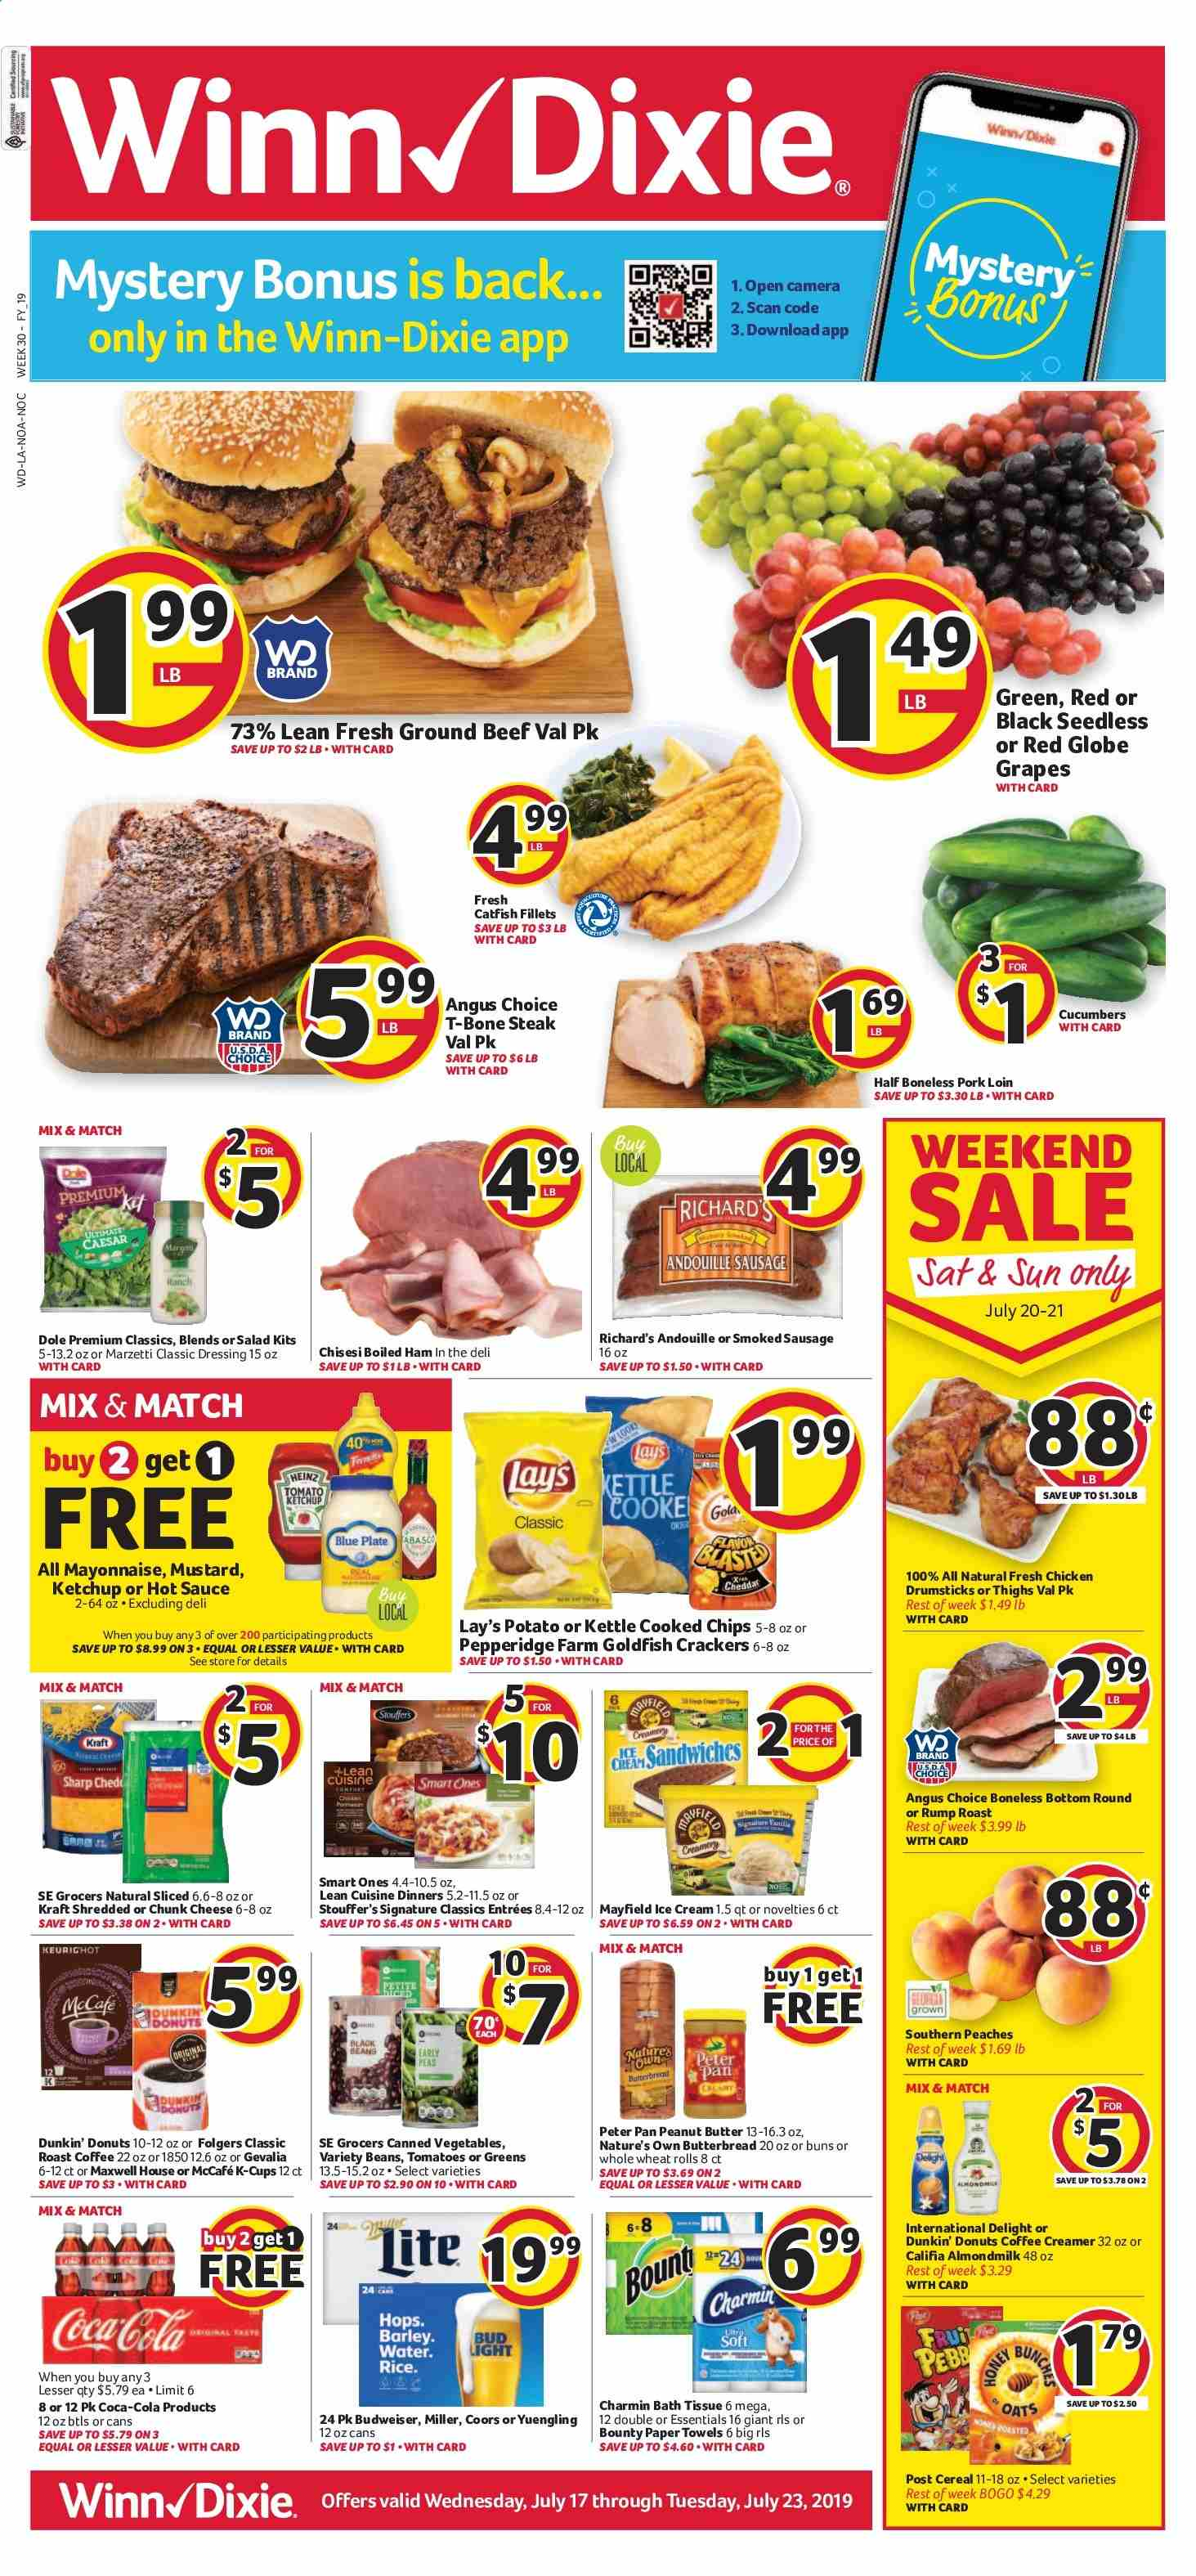 Winn Dixie Flyer  - 07.17.2019 - 07.23.2019. Page 1.